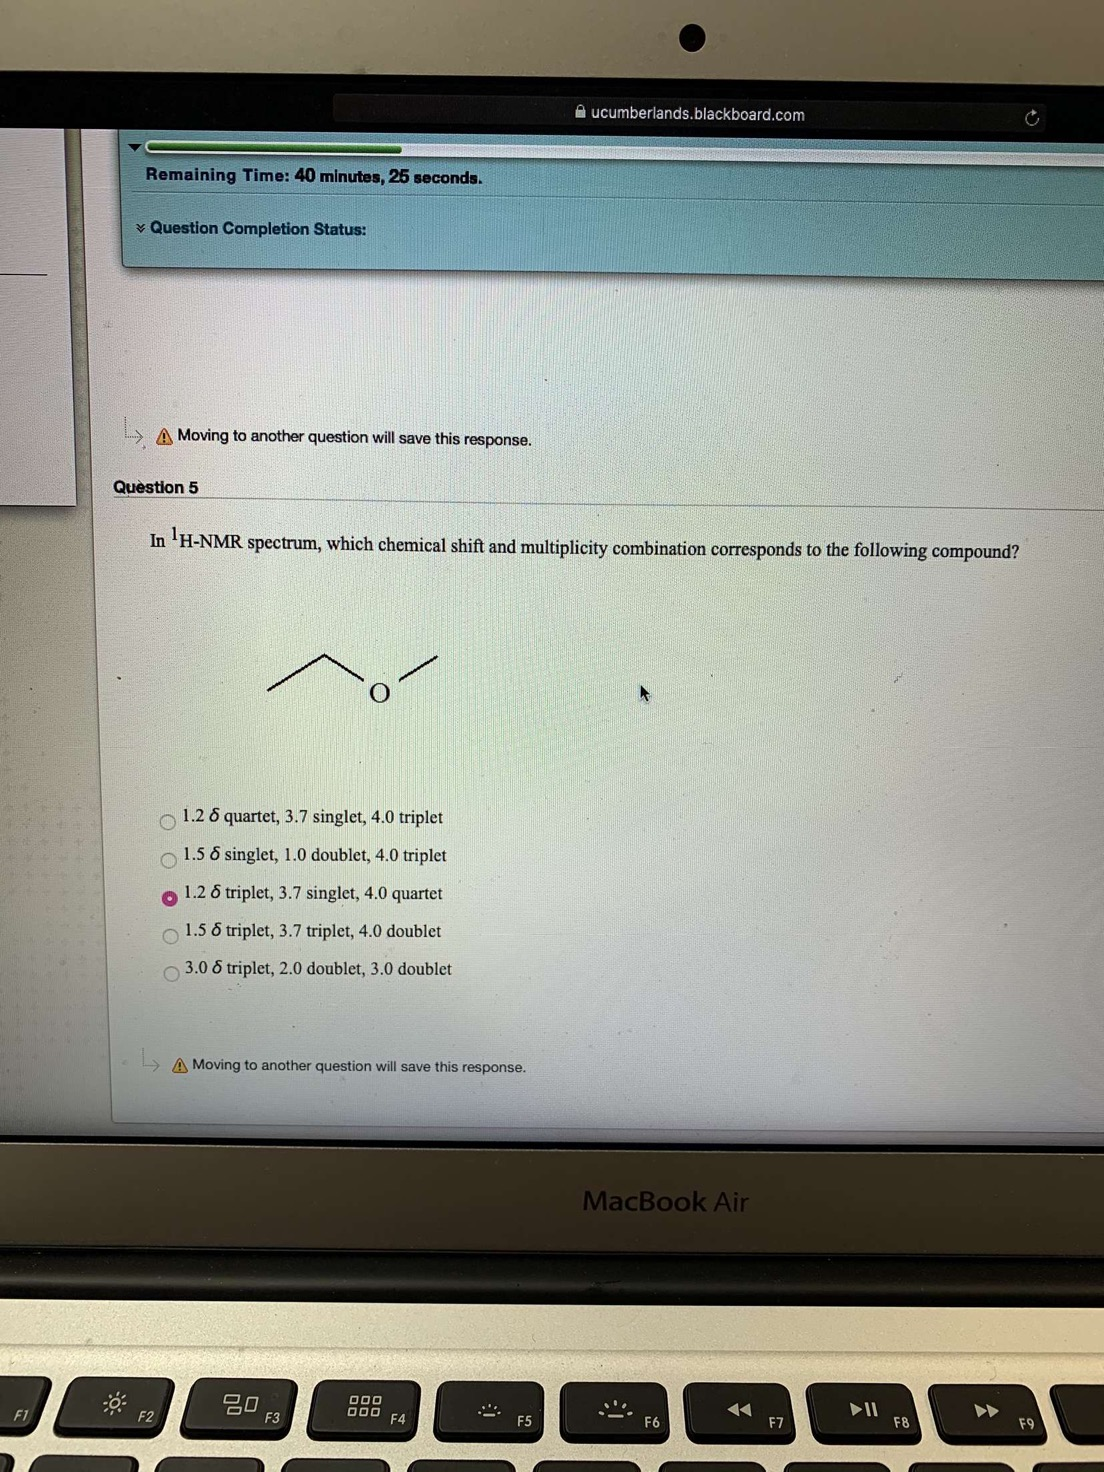 ucumberlands.blackboard.com Remaining Time: 40 minutes, 25 seconds. Question Completion Status: A Moving to another question will save this response. Question 5 In H-NMR spectrum, which chemical shift and multiplicity combination corresponds to the following compound? O1.26 quartet, 3.7 singlet, 4.0 triplet 1.5 6 singlet, 1.0 doublet, 4.0 triplet 1.26 triplet, 3.7 singlet, 4.0 quartet 1.5 6 triplet, 3.7 triplet, 4.0 doublet 3.0 6 triplet, 2.0 doublet, 3.0 doublet A Moving to another question will save this response. MacBook Air go F3 000 II F8 F1 F2 F4 F7 F9